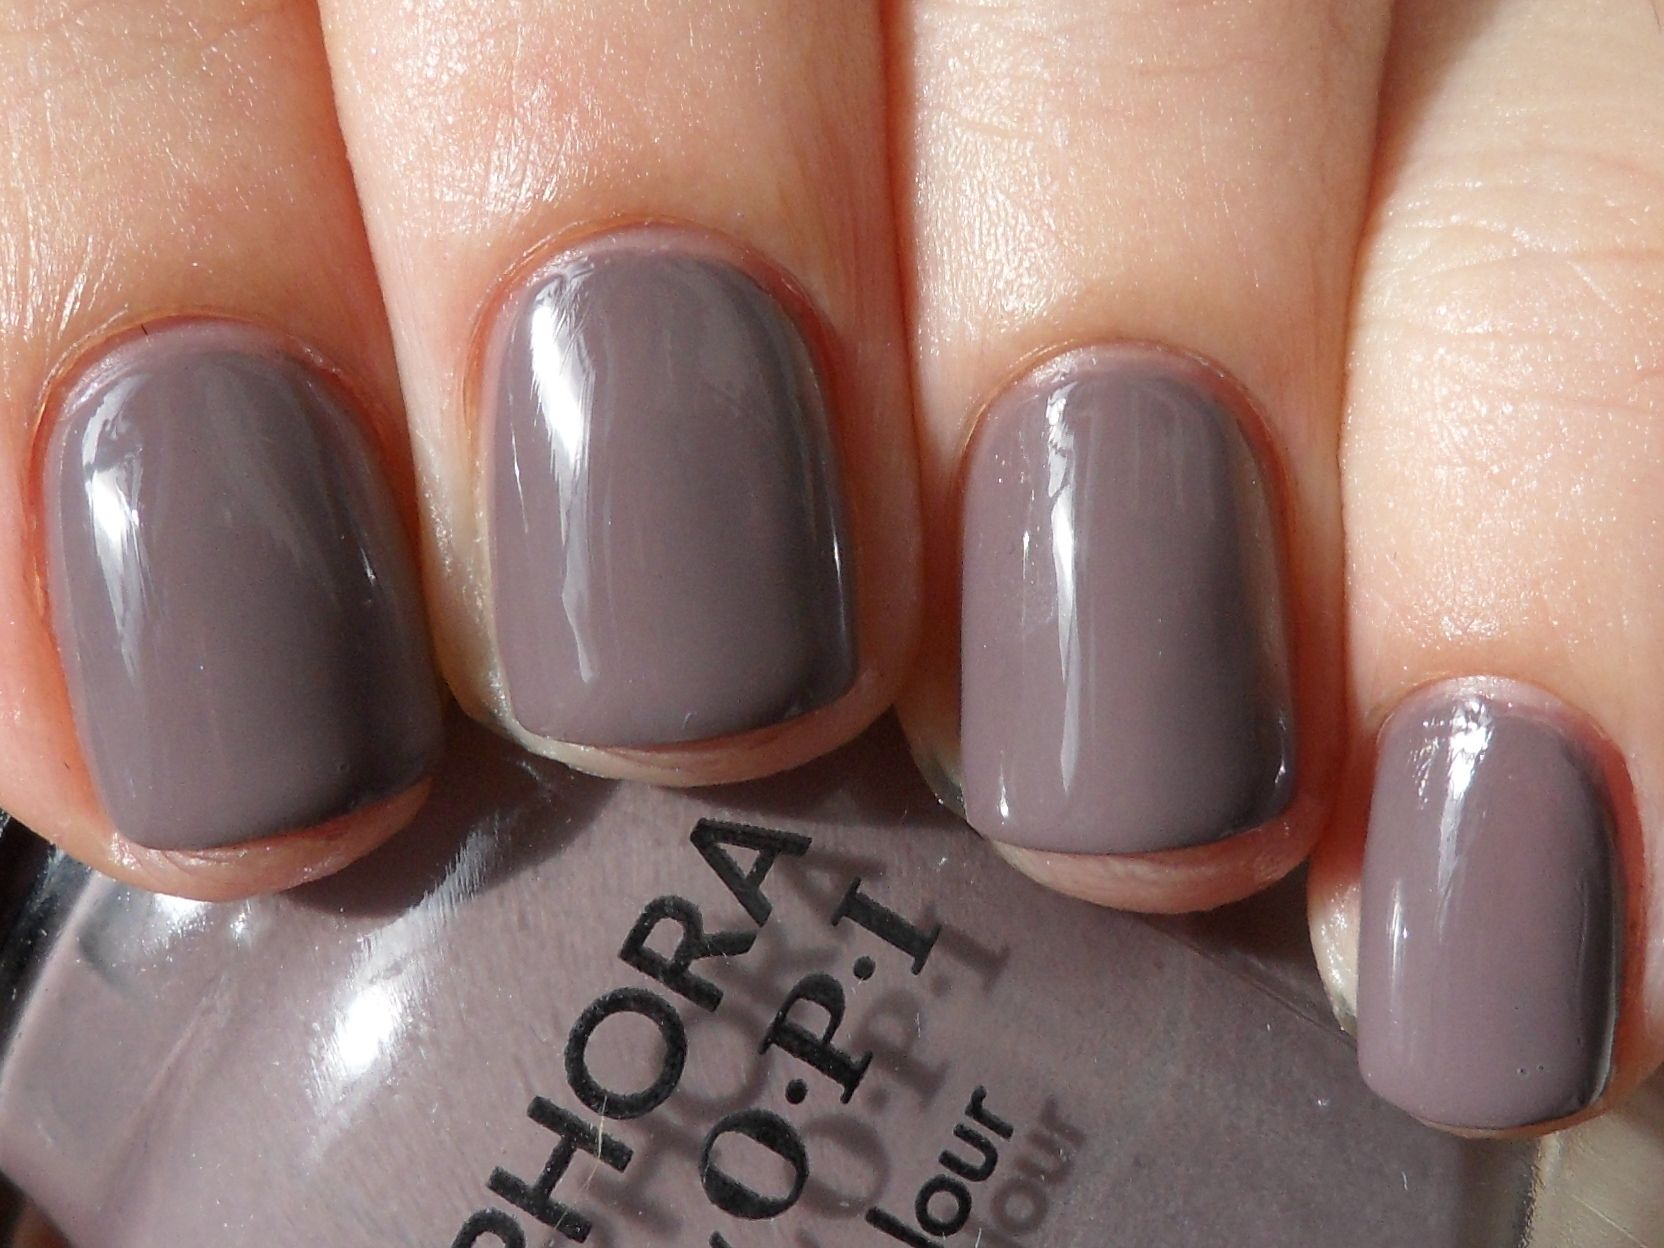 I like!  But, wondering if I could pull this off without it looking like I have mud on my fingers...